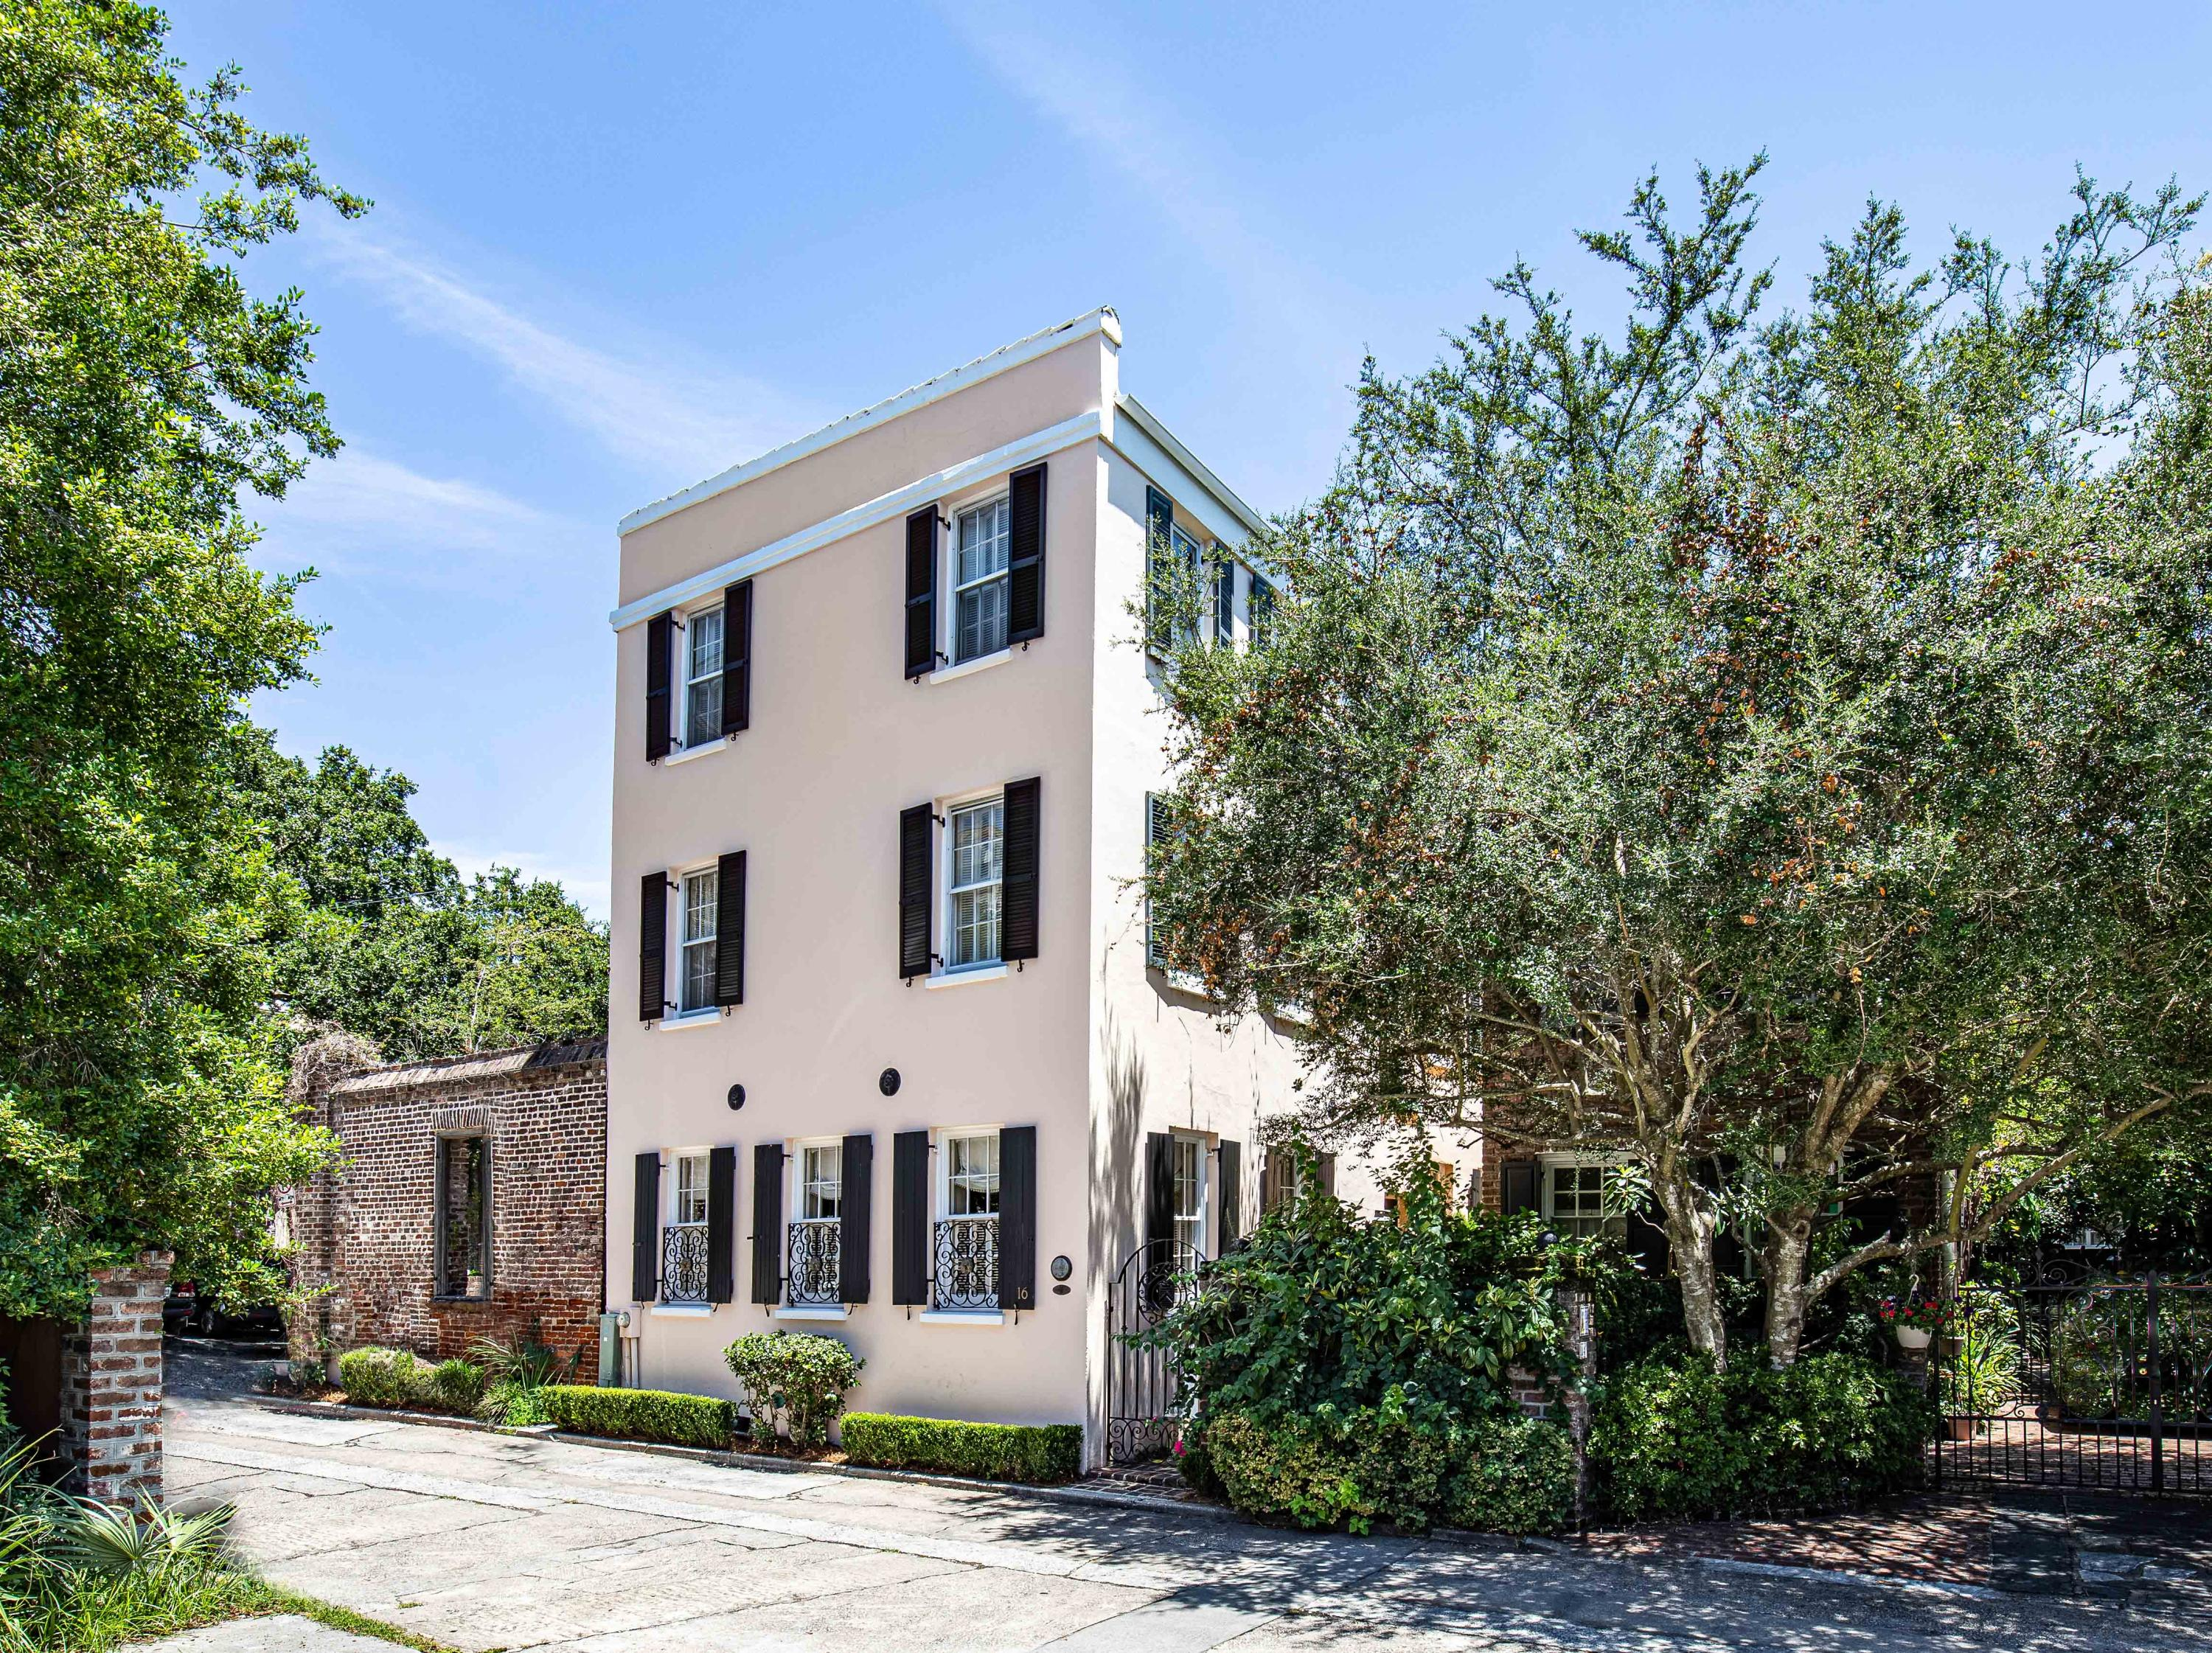 16 Bedons Alley Charleston, SC 29401